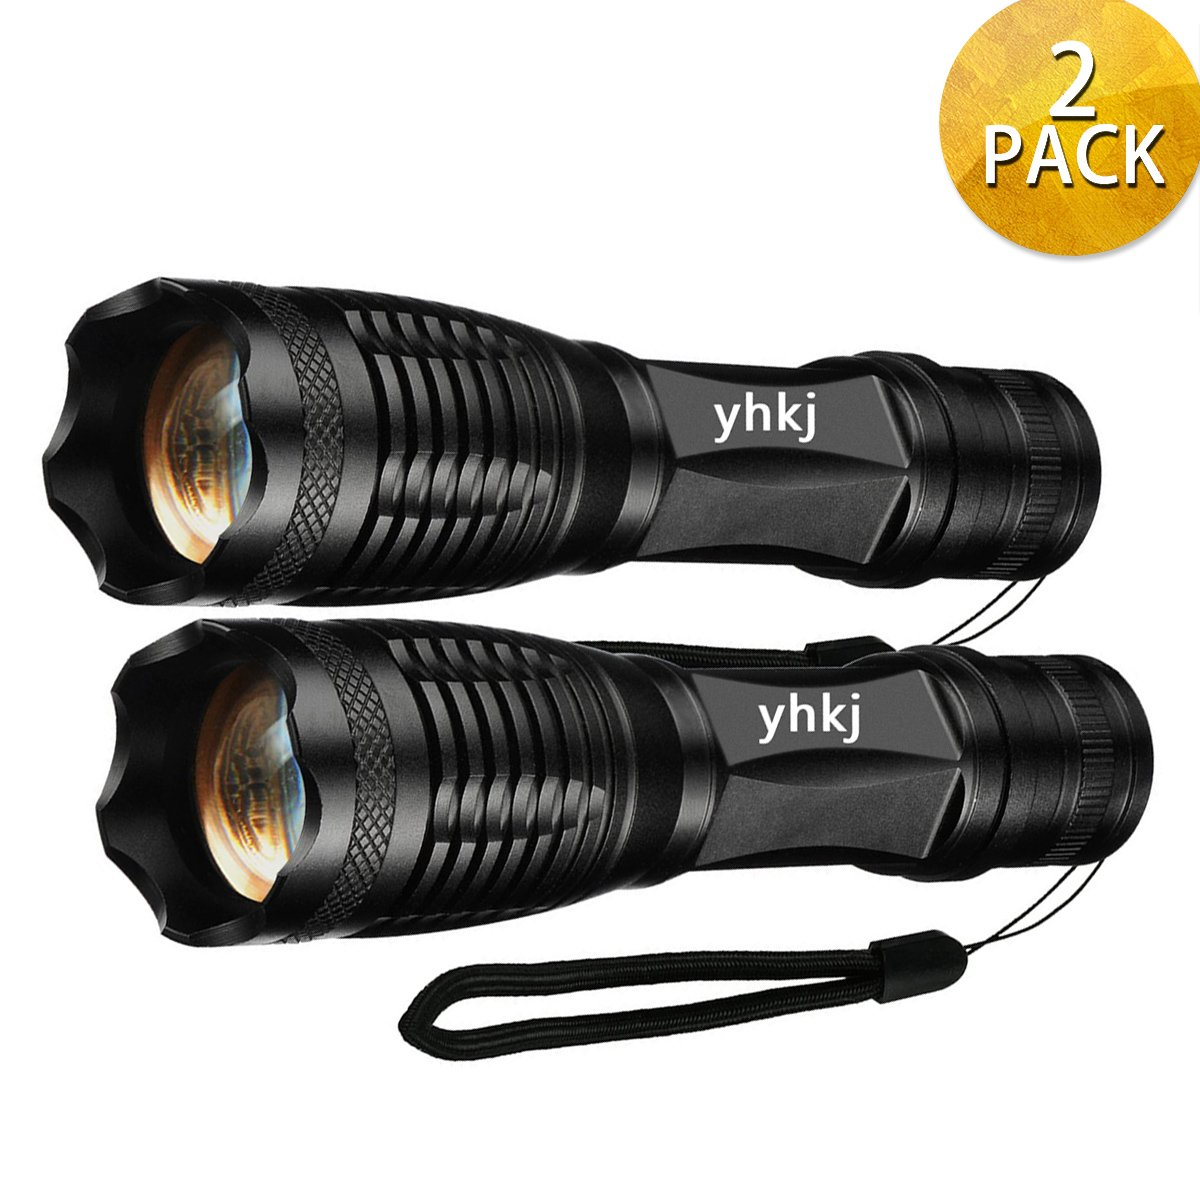 2000 Lumen Handheld Flashlight , Best Portable Tac light,Ultra Bright Outdoor Waterproof 18650 Torch , 5 Modes Zoomable -Suitable for Outdoor Sports Camping Emergency(2pc black) Yhkj